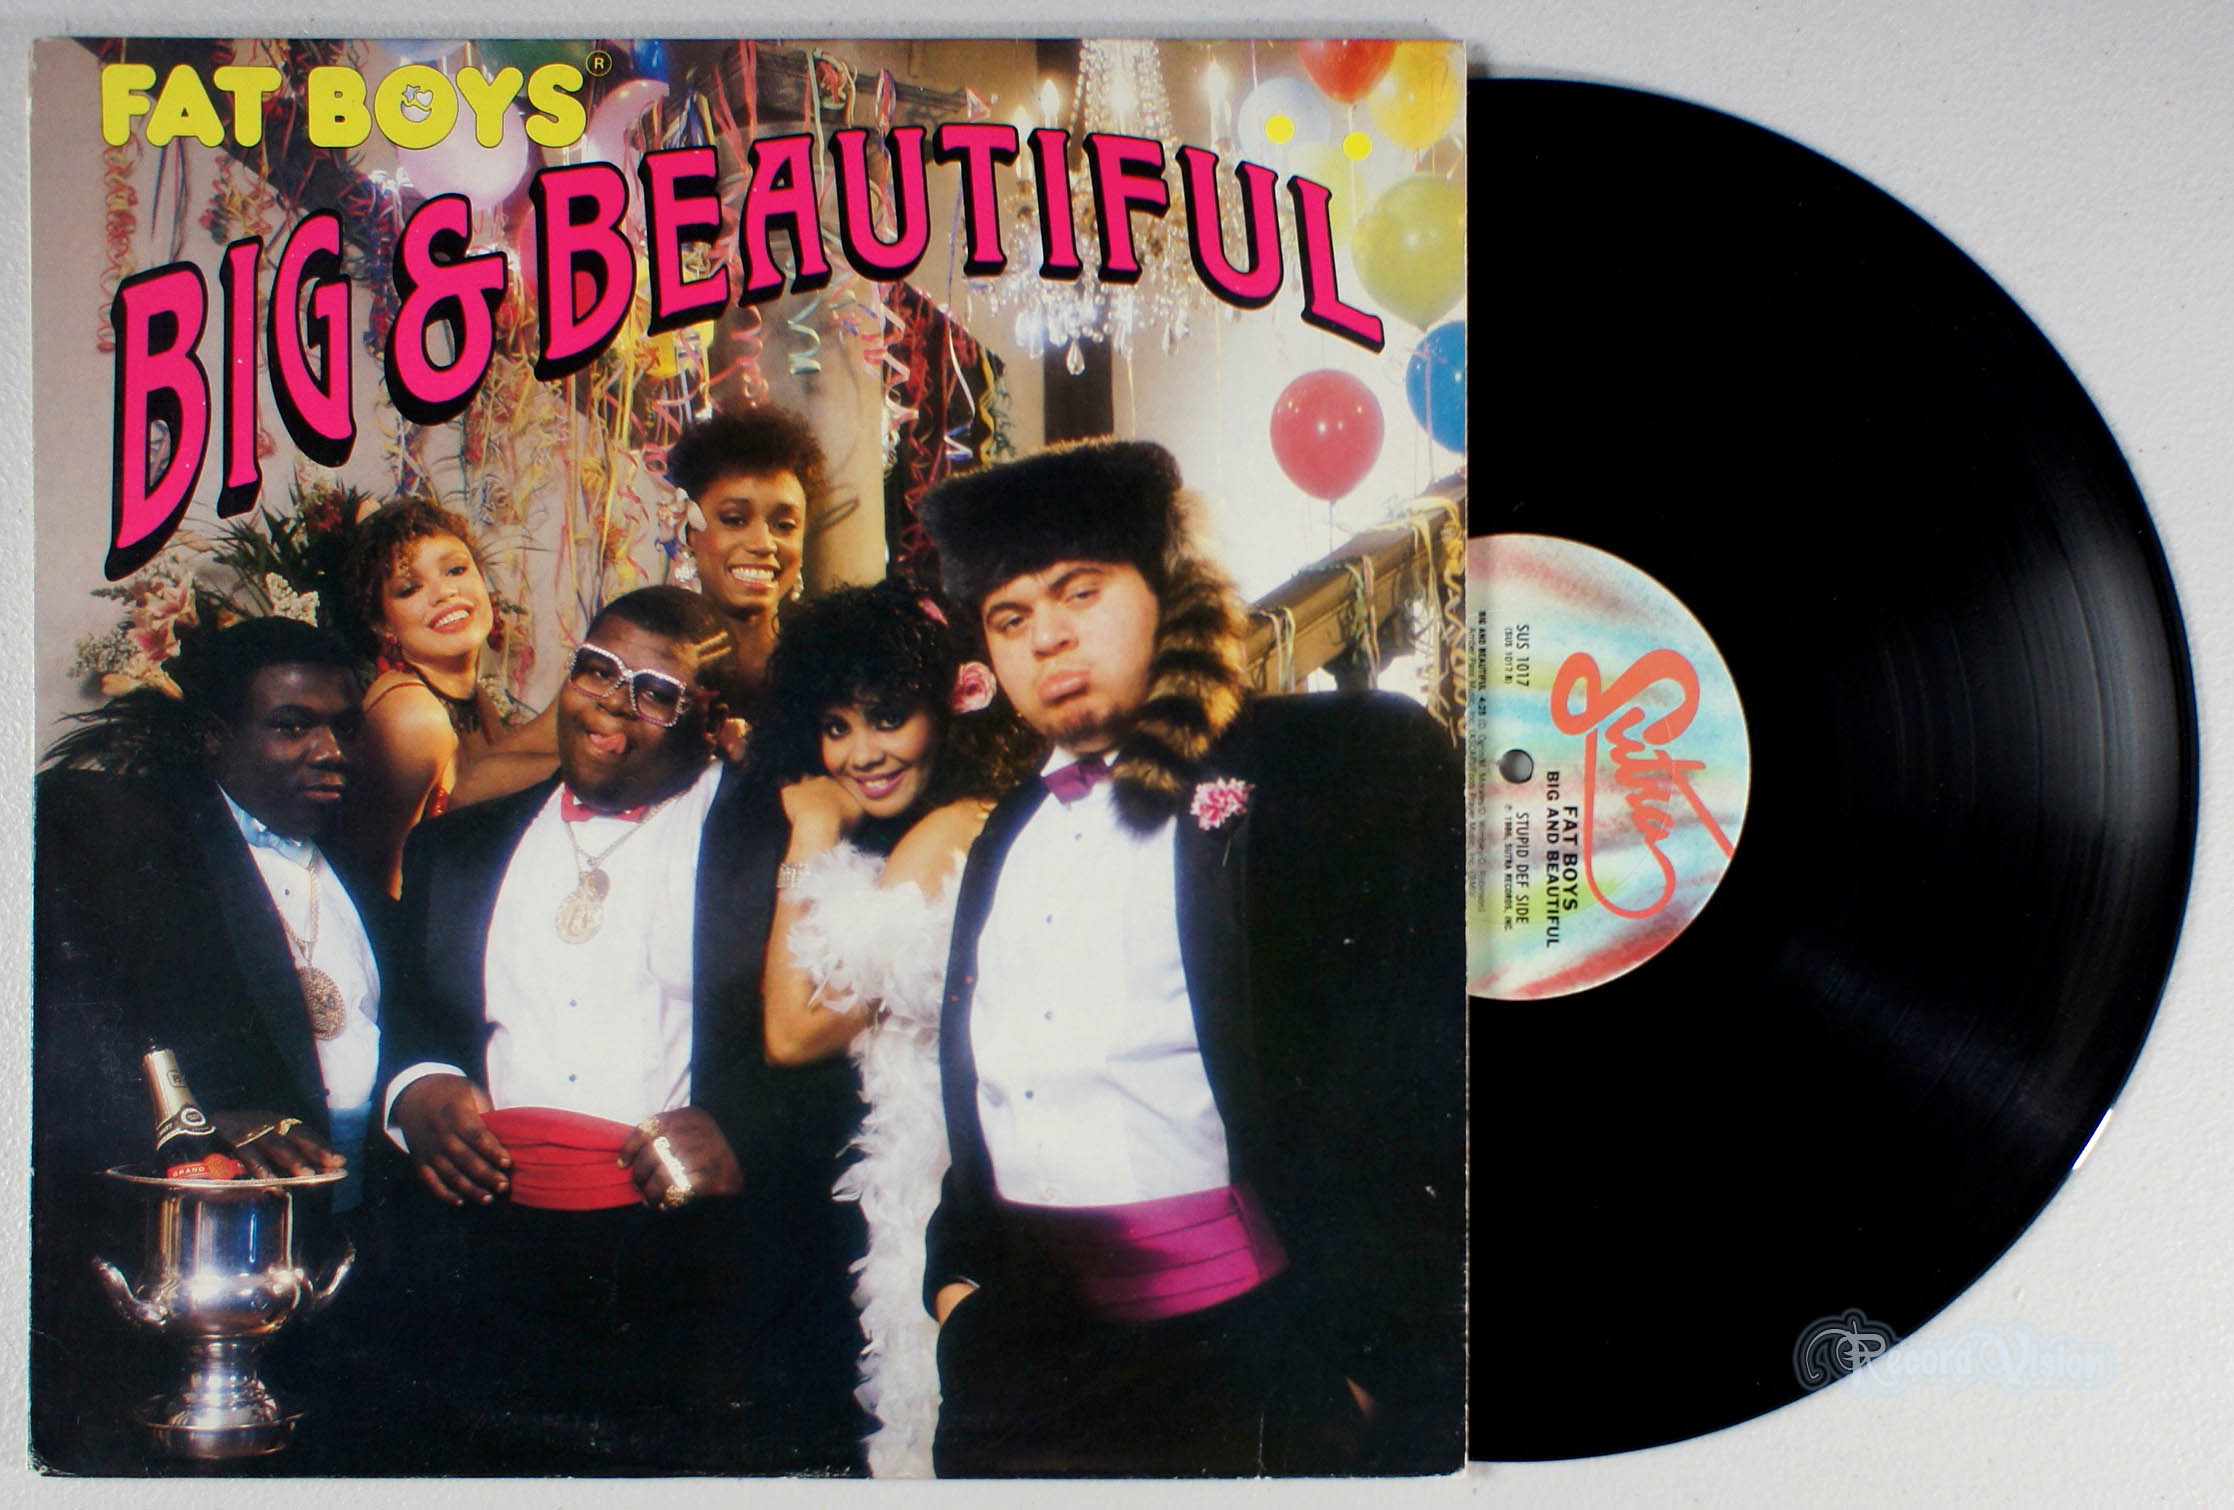 FAT BOYS - Big and Beautiful - LP